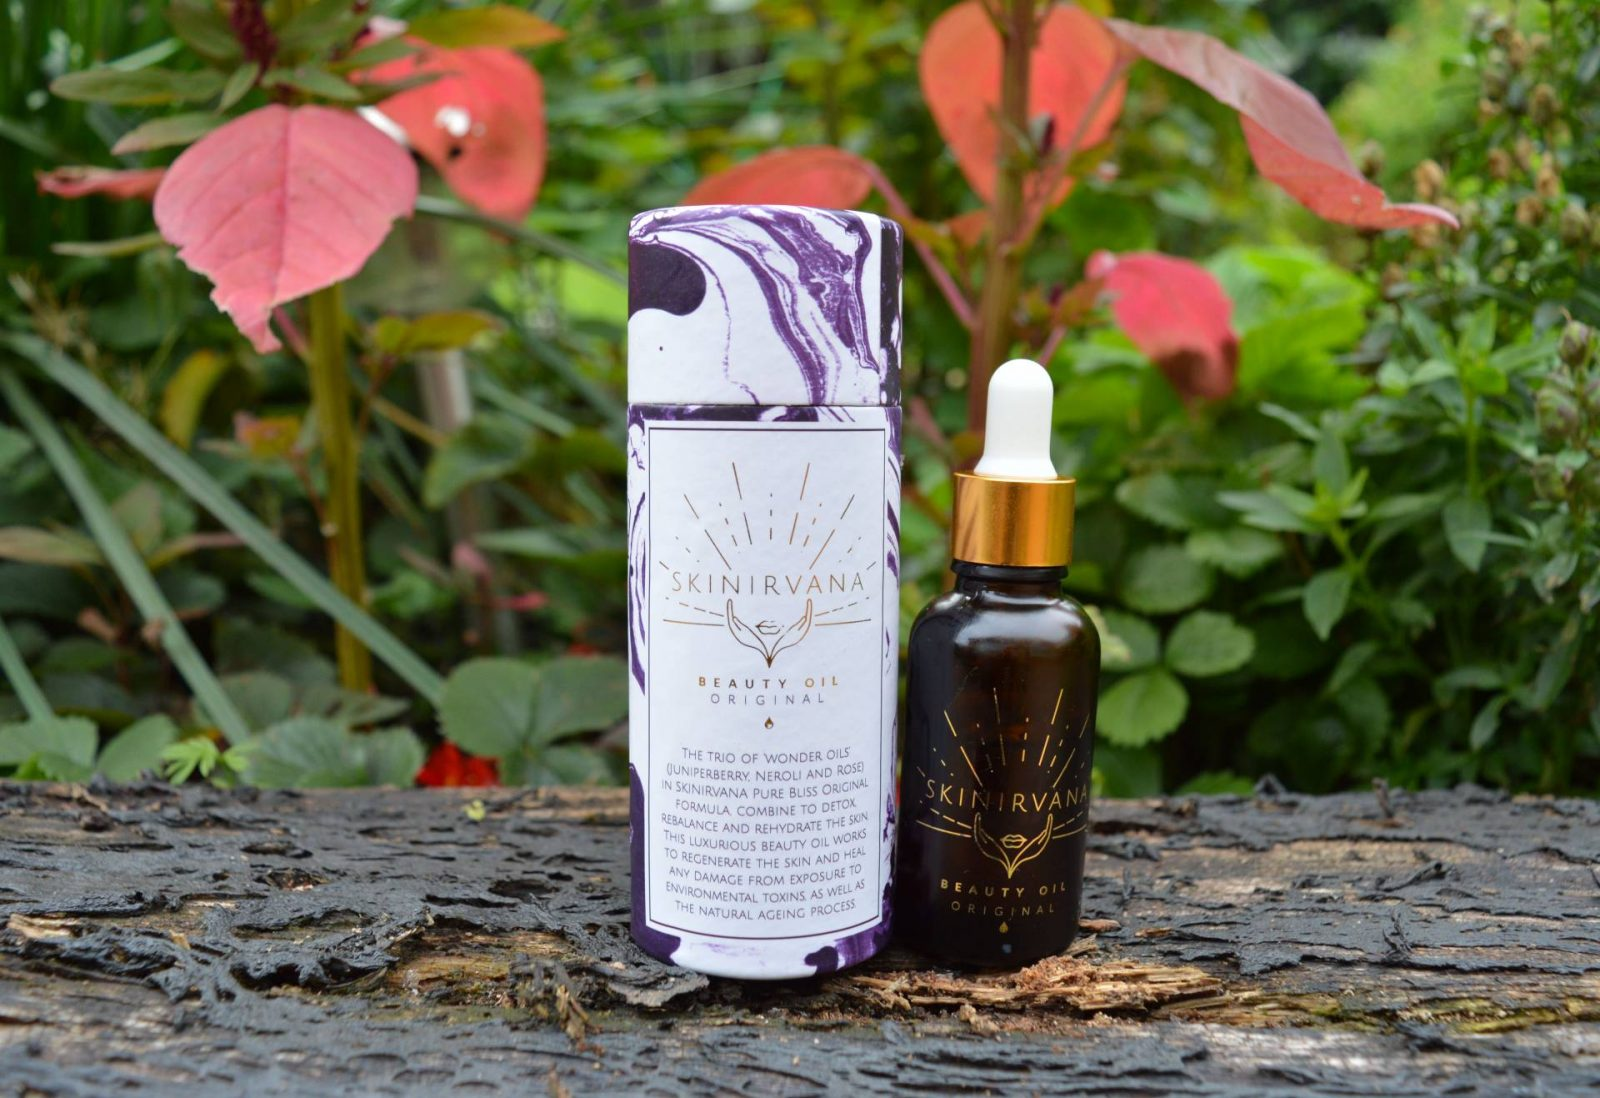 October Beauty Favourites, Skinirvana beauty oil